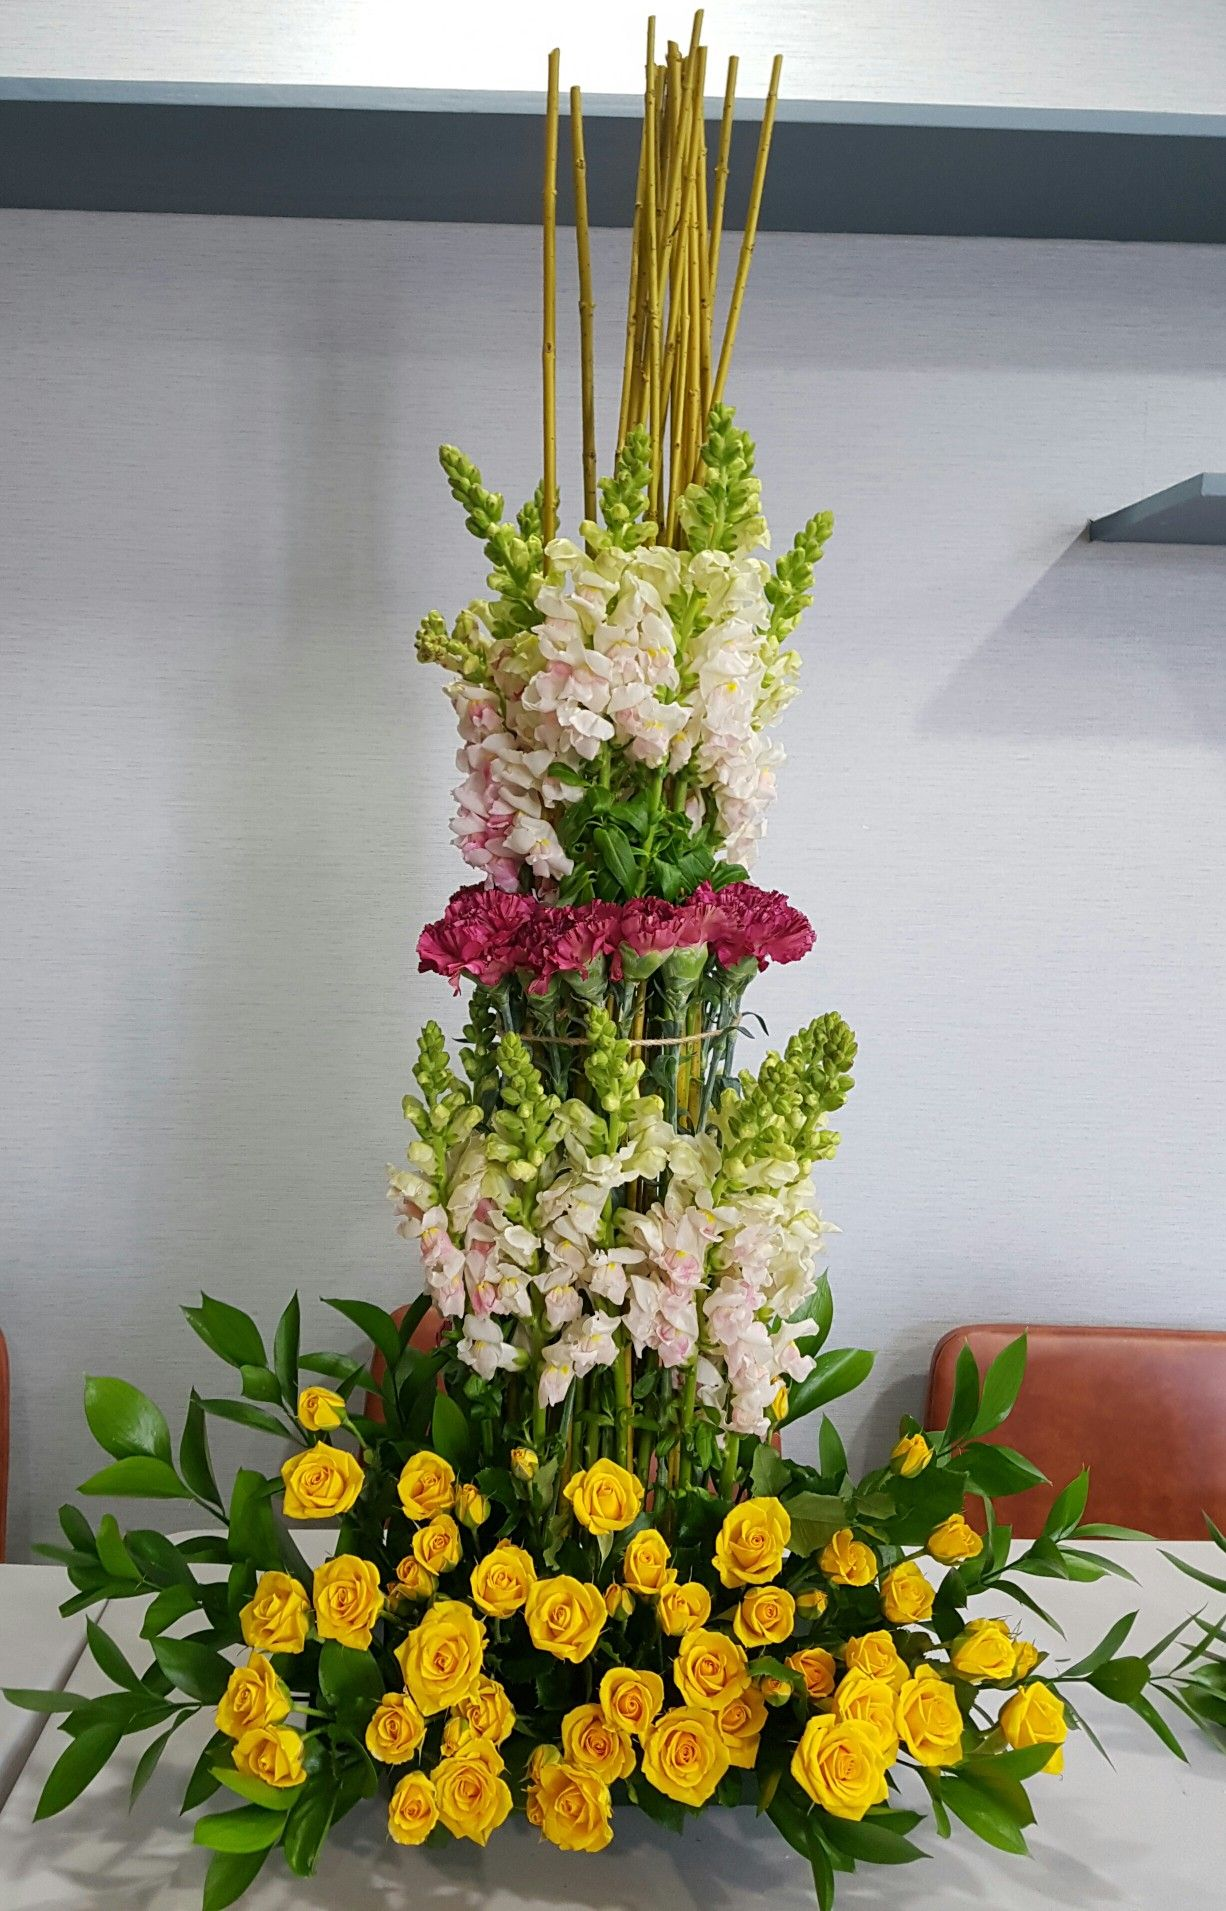 Flower Arrangement, Floral Arrangements, Watercolors, Flower Arrangements, Flower Arrangements, Floral